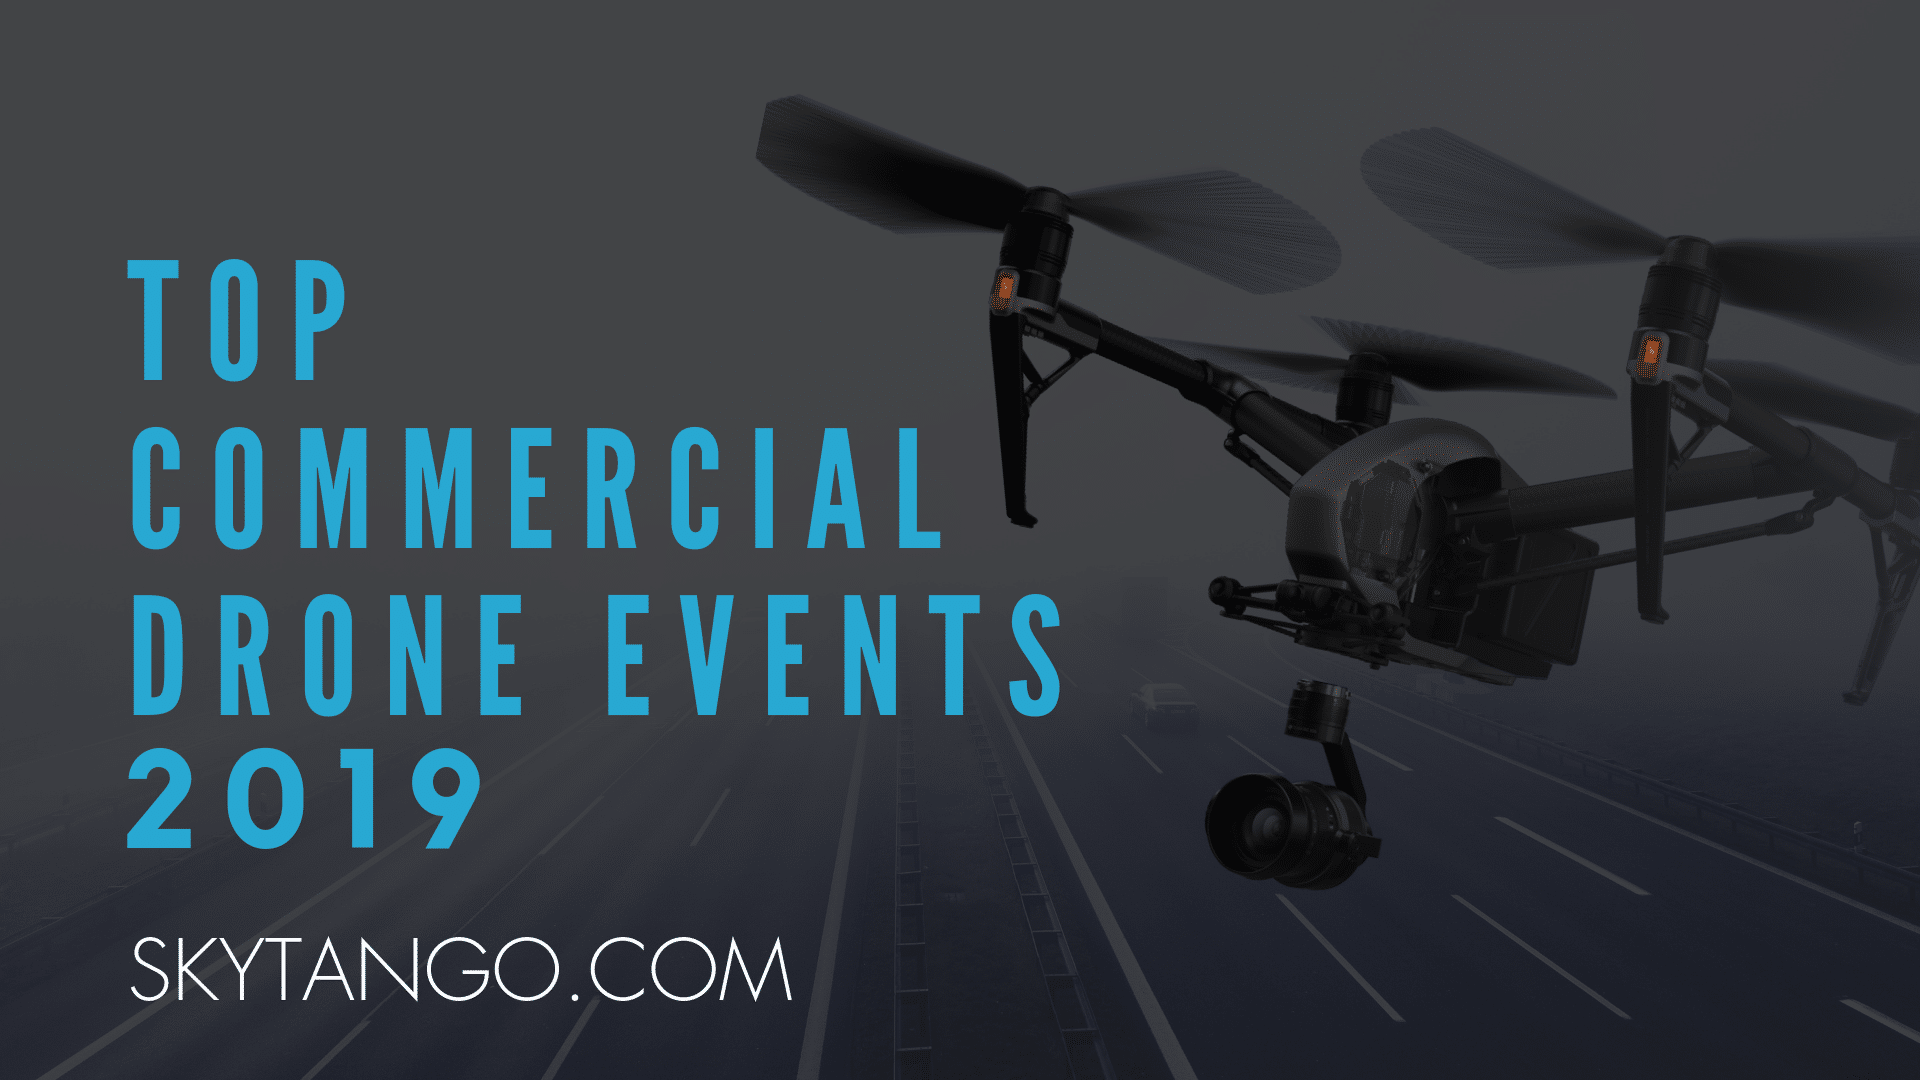 Top Commercial Drone Events Of 2019